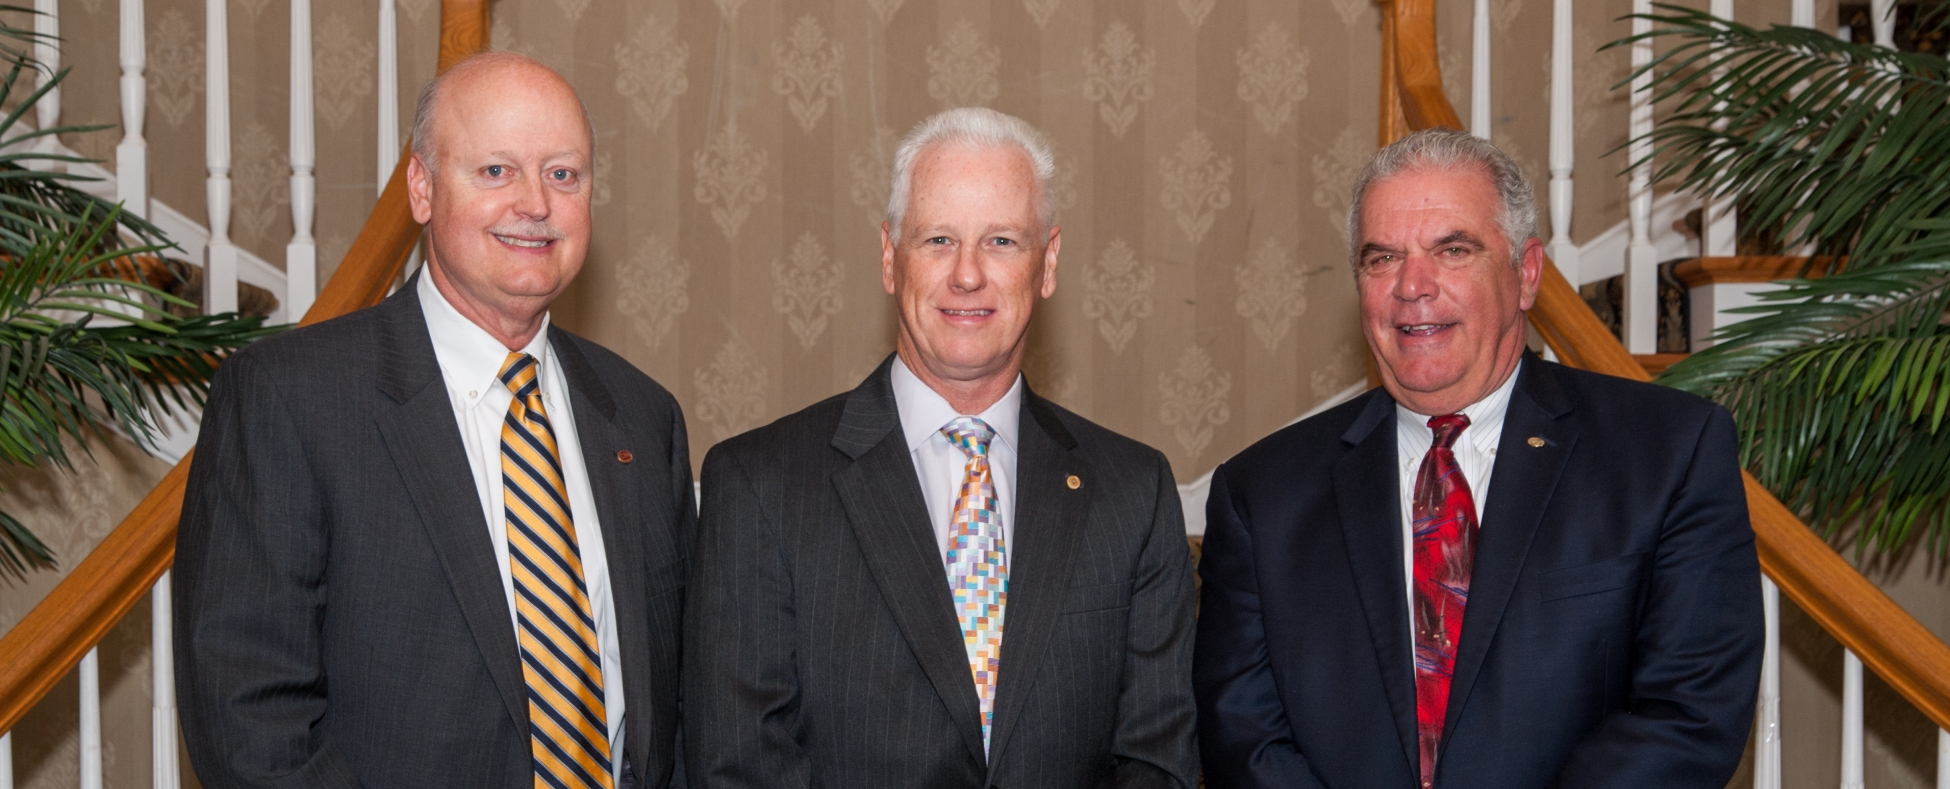 Connecticut Mutual Holding Company Presidents: Steve Reilly, Gary Roman, Thomas Villanova